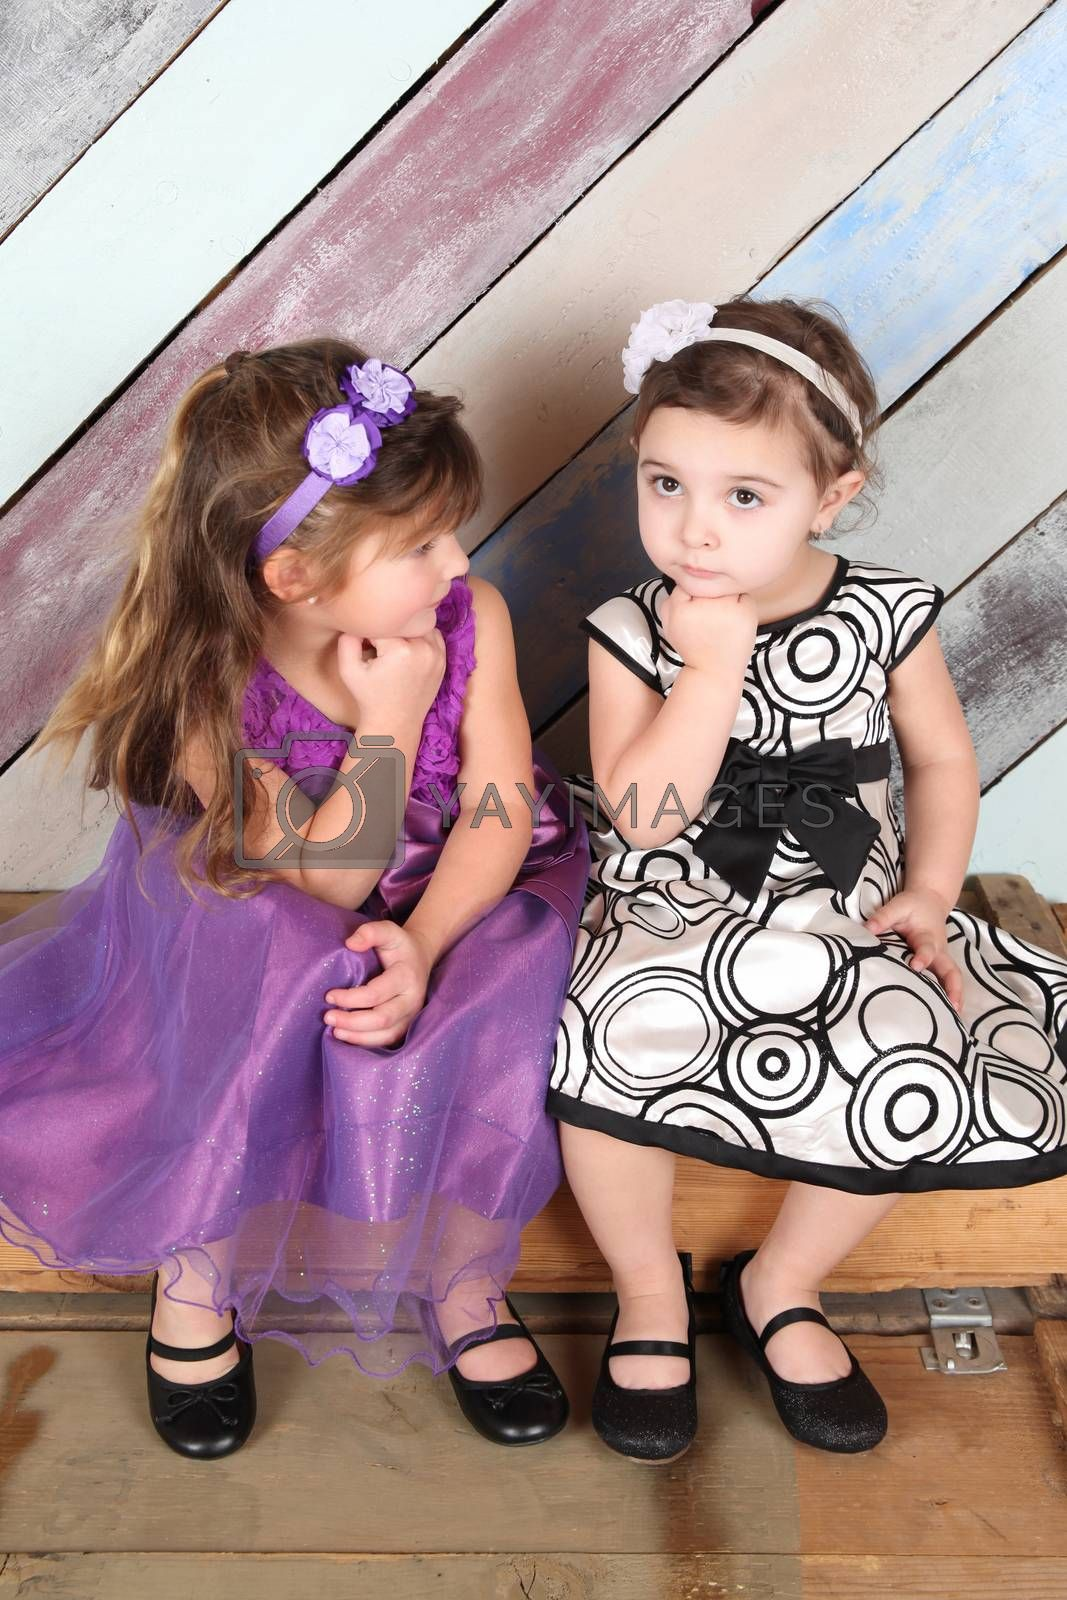 Brunette toddler friends against a colorful background